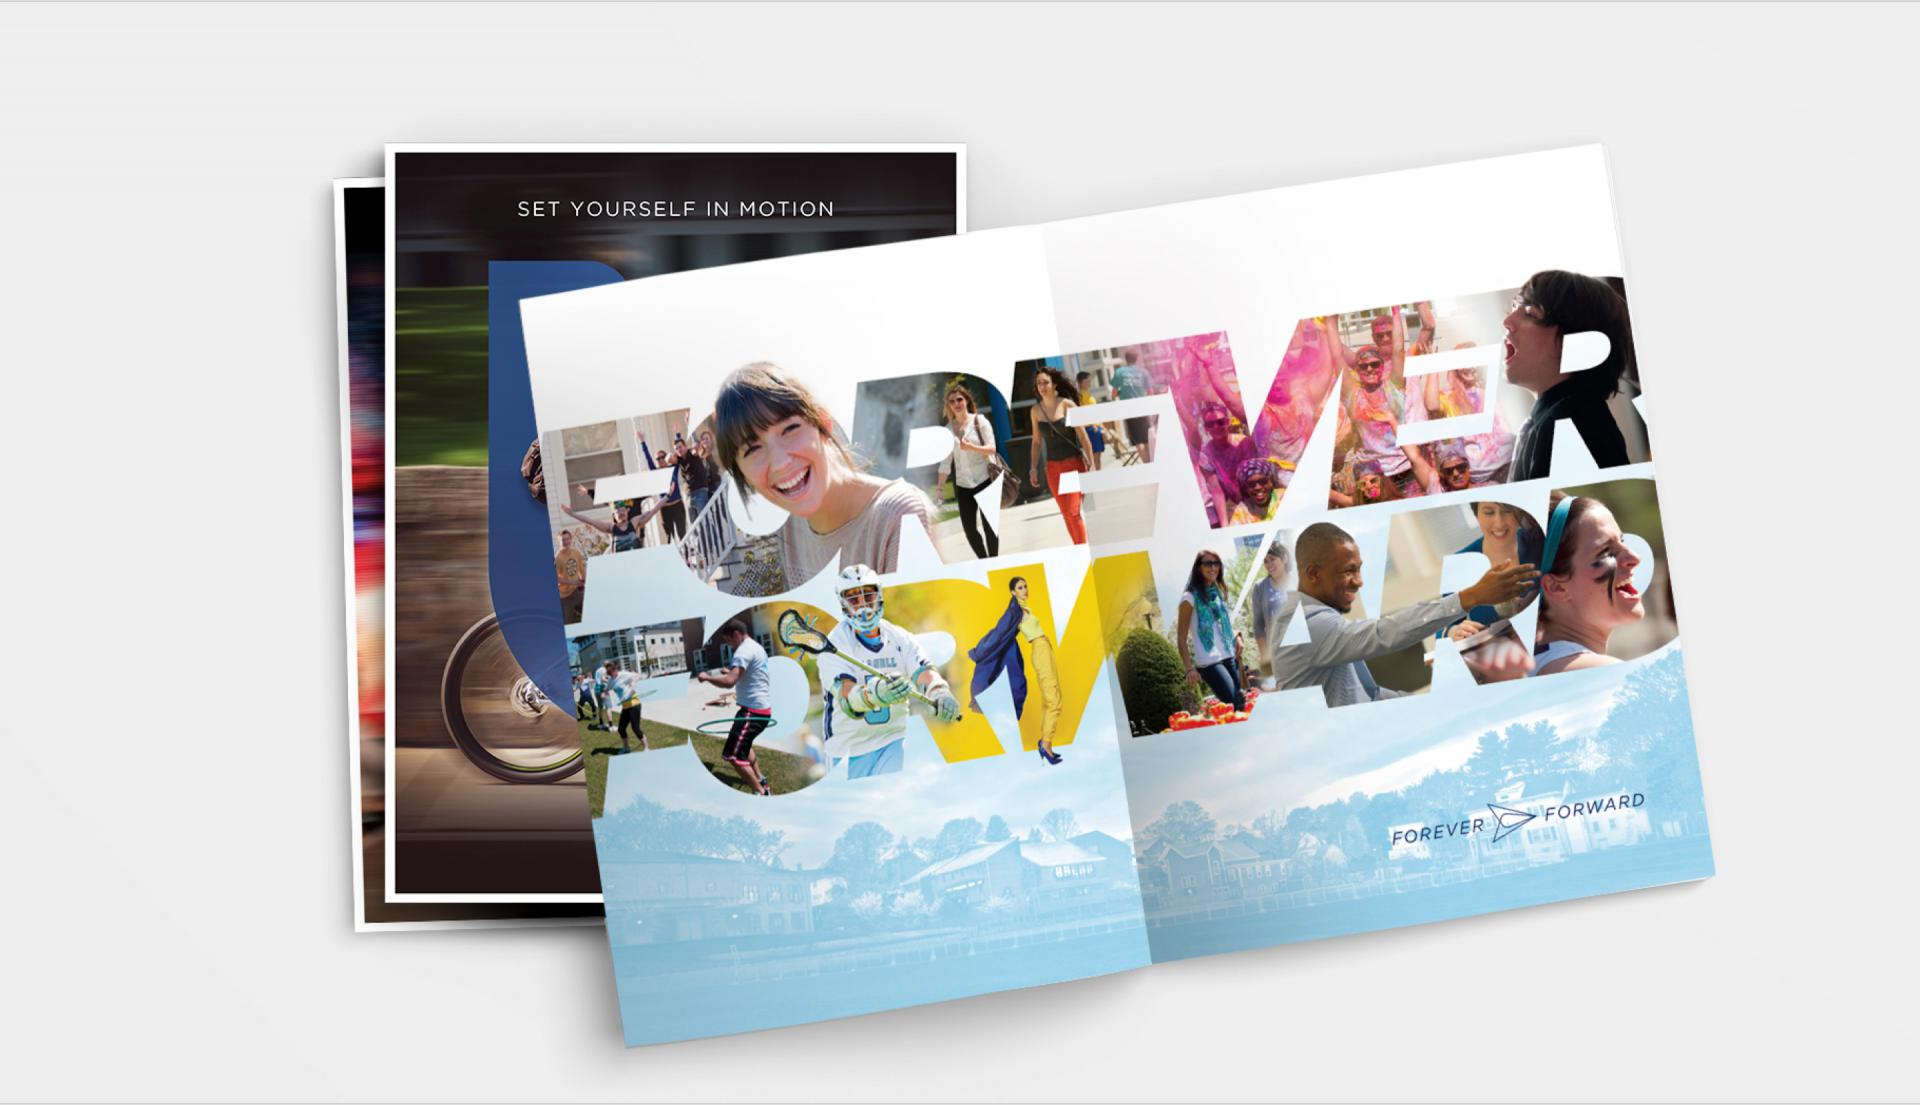 Open spread of view books with new Lasell University branding and Forever Forward message.